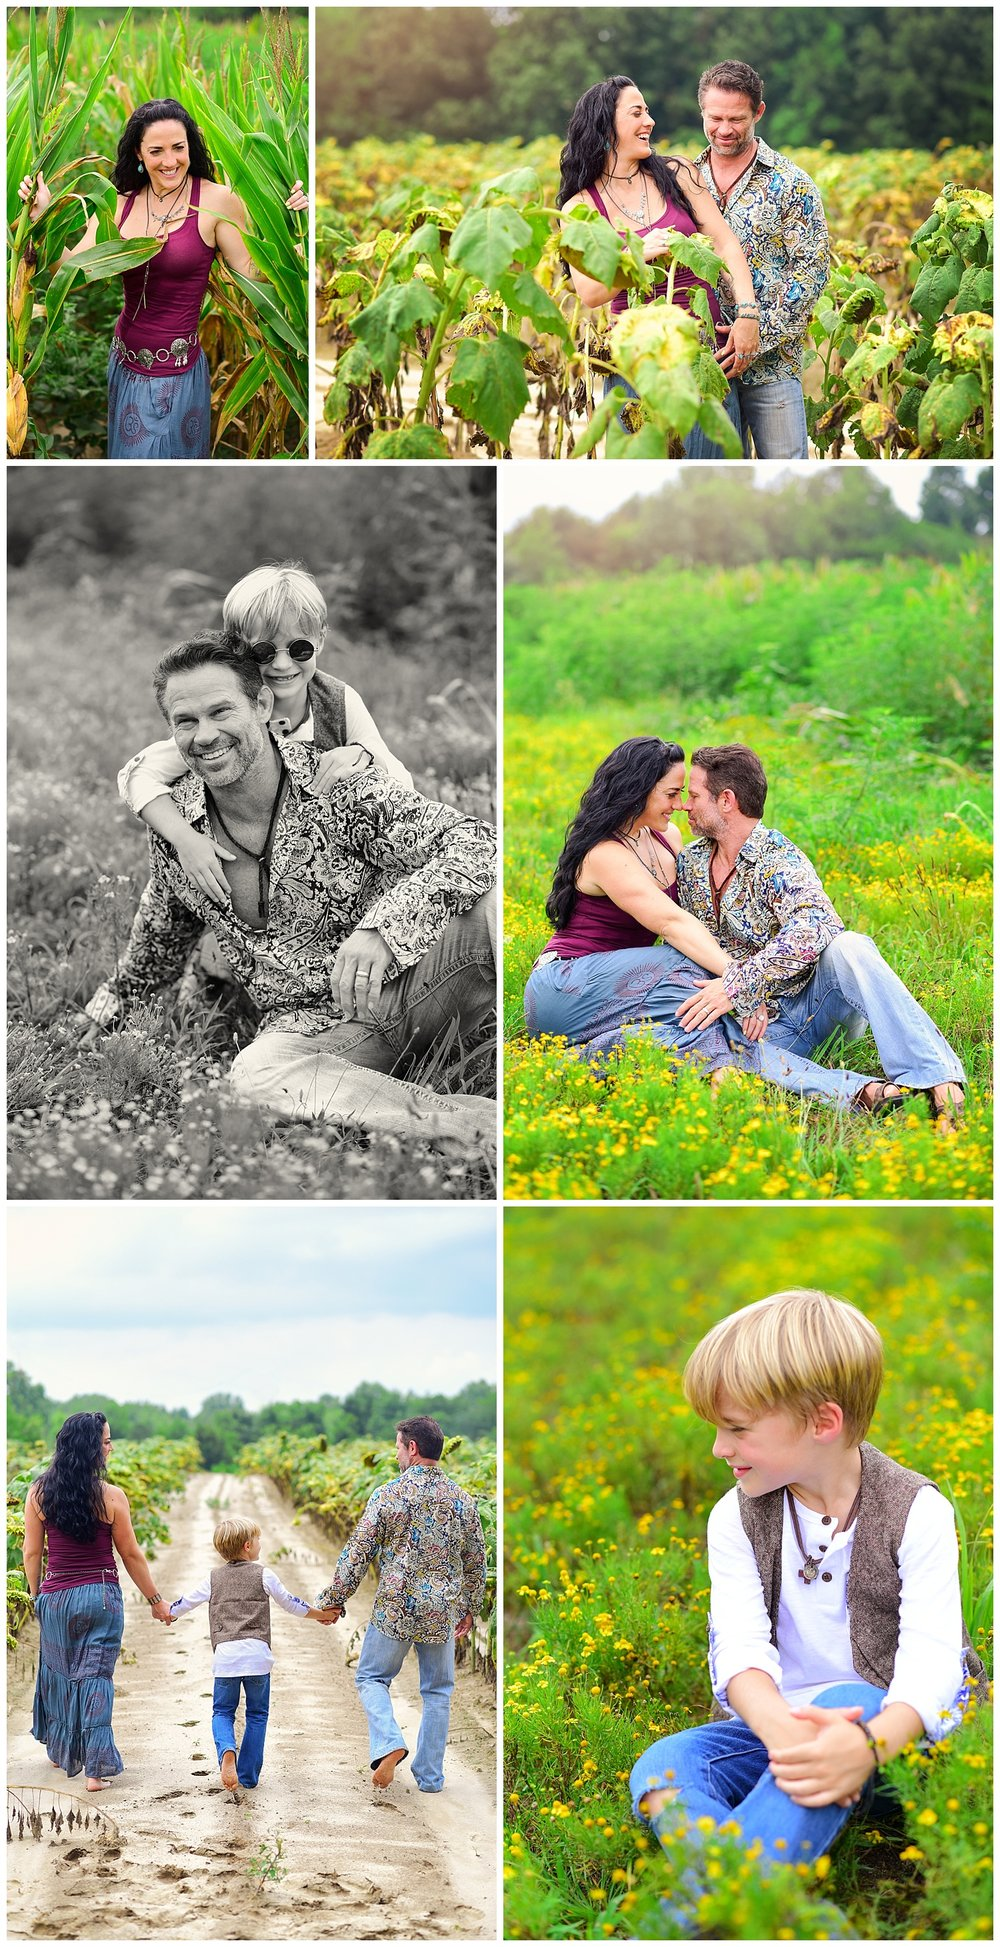 Boho Photography in Sunflower Field